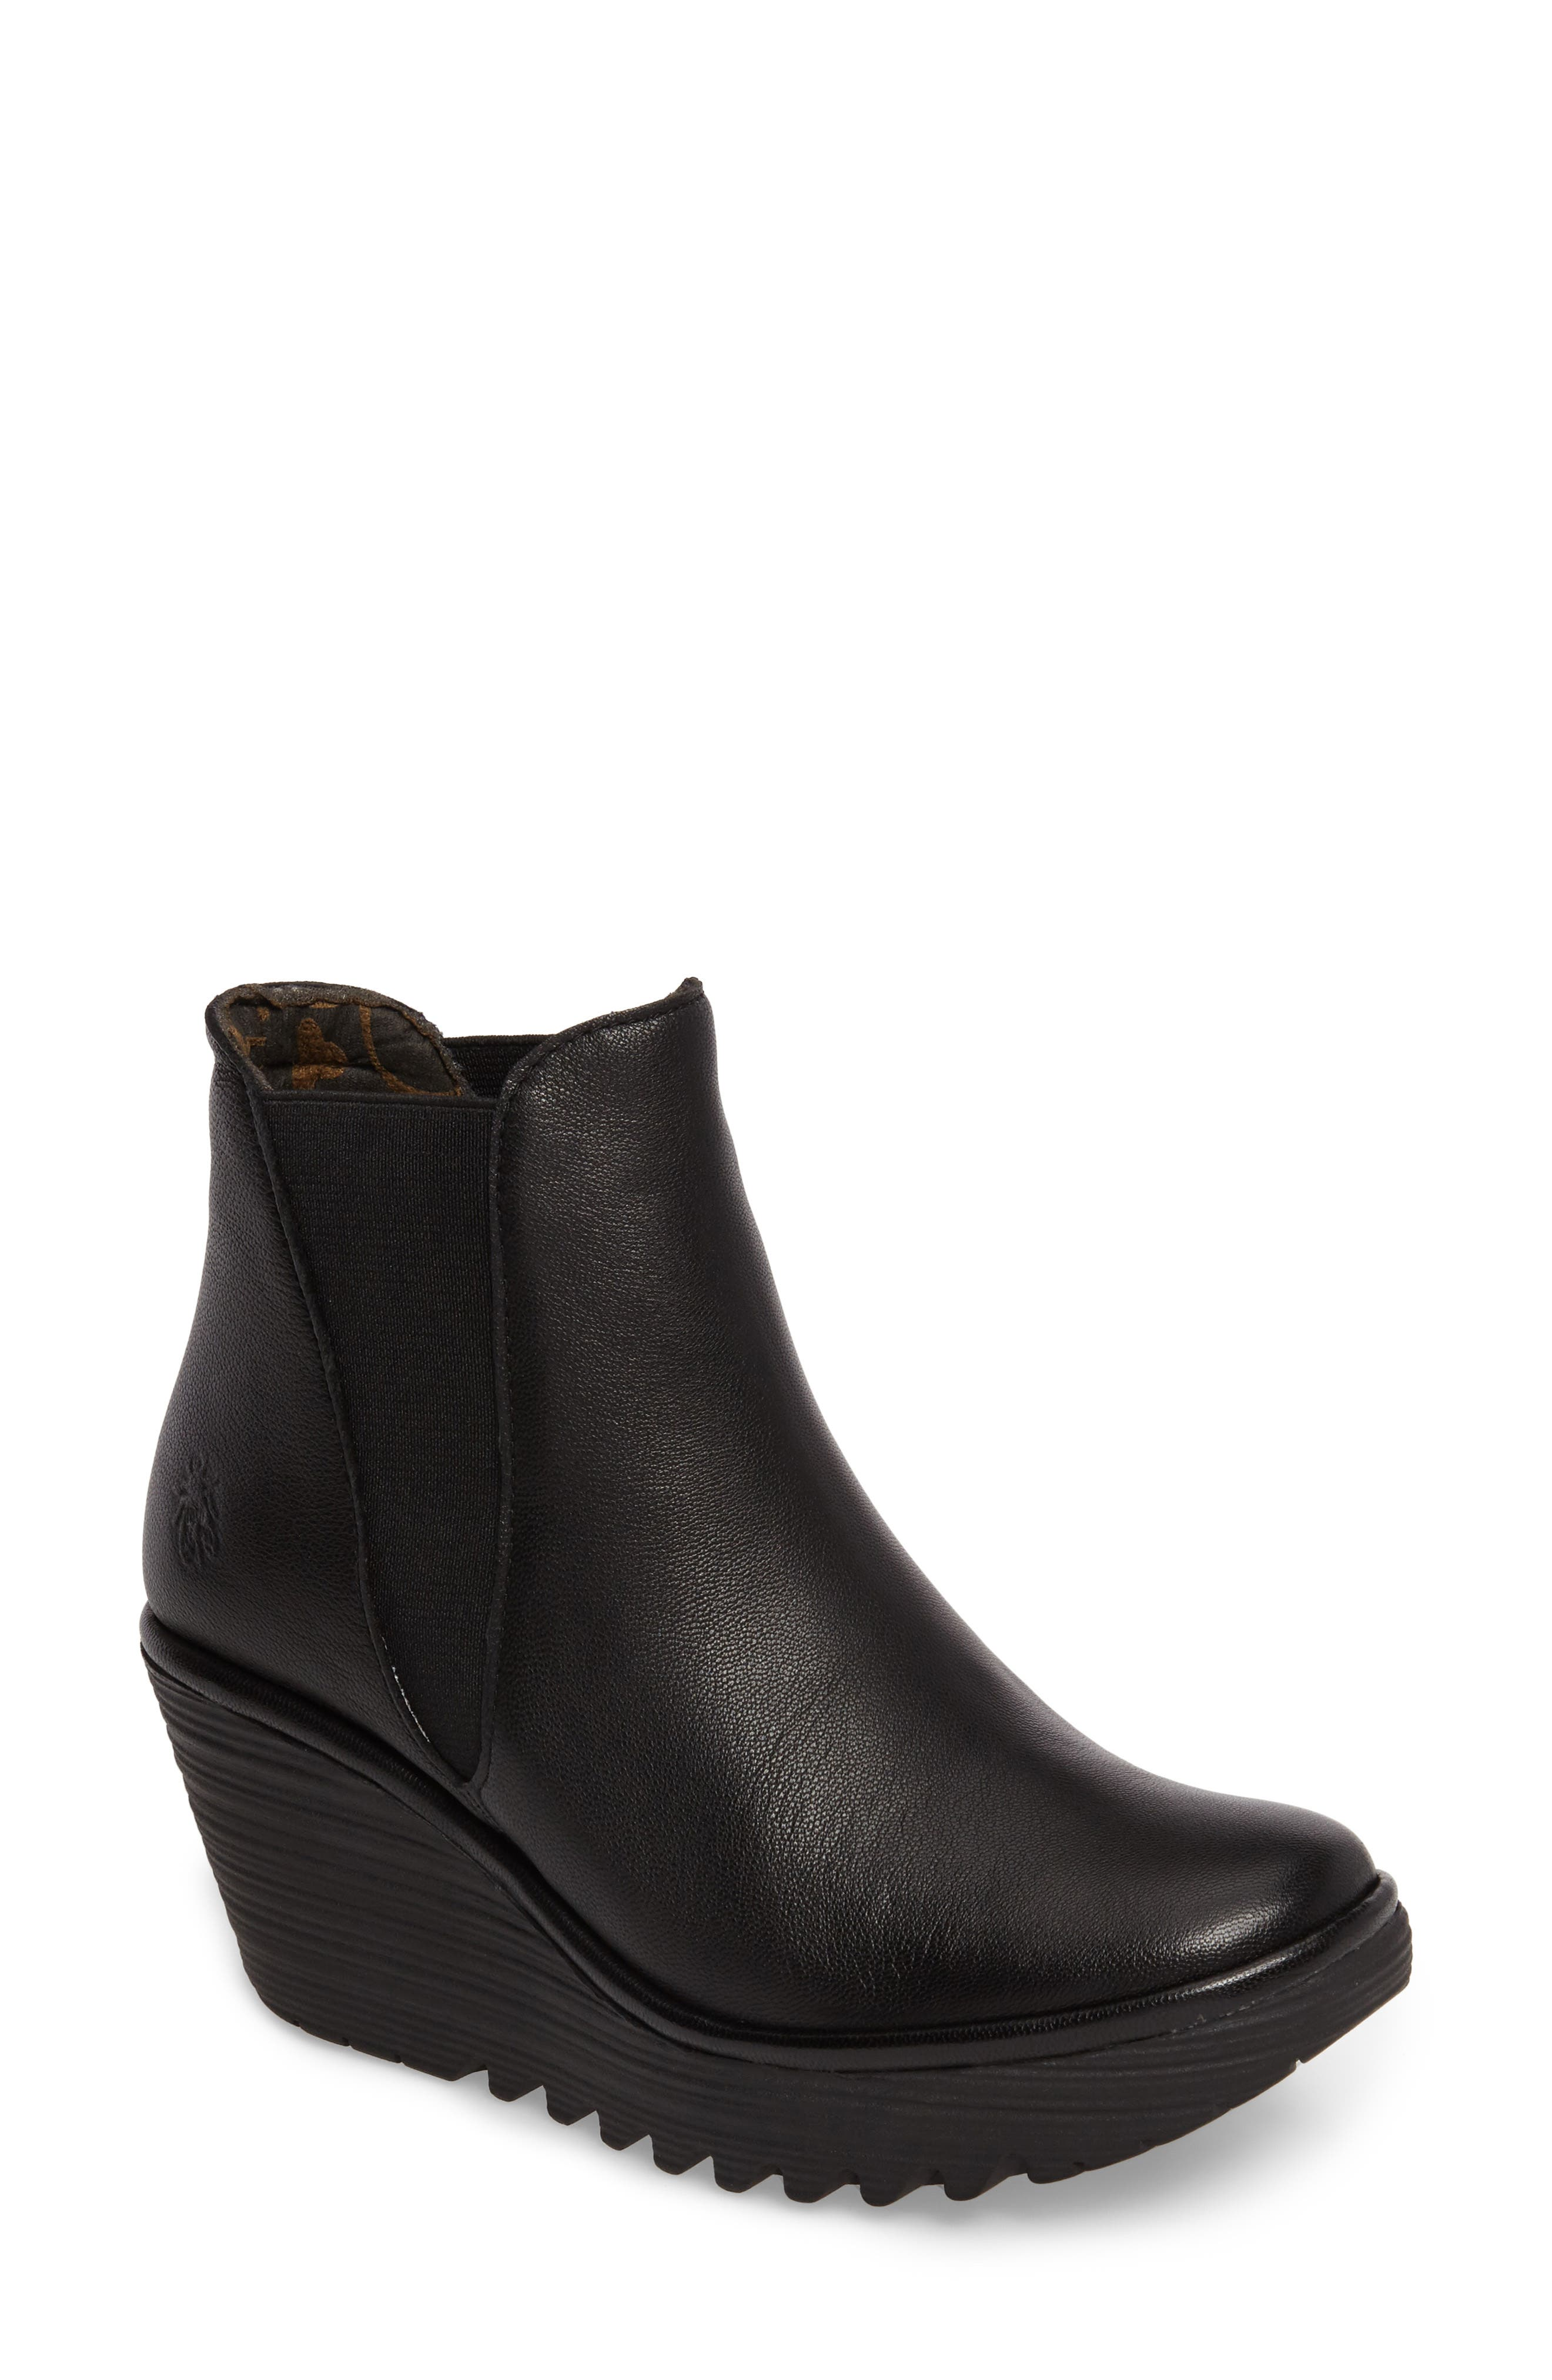 Yoss Wedge Bootie,                         Main,                         color, 001